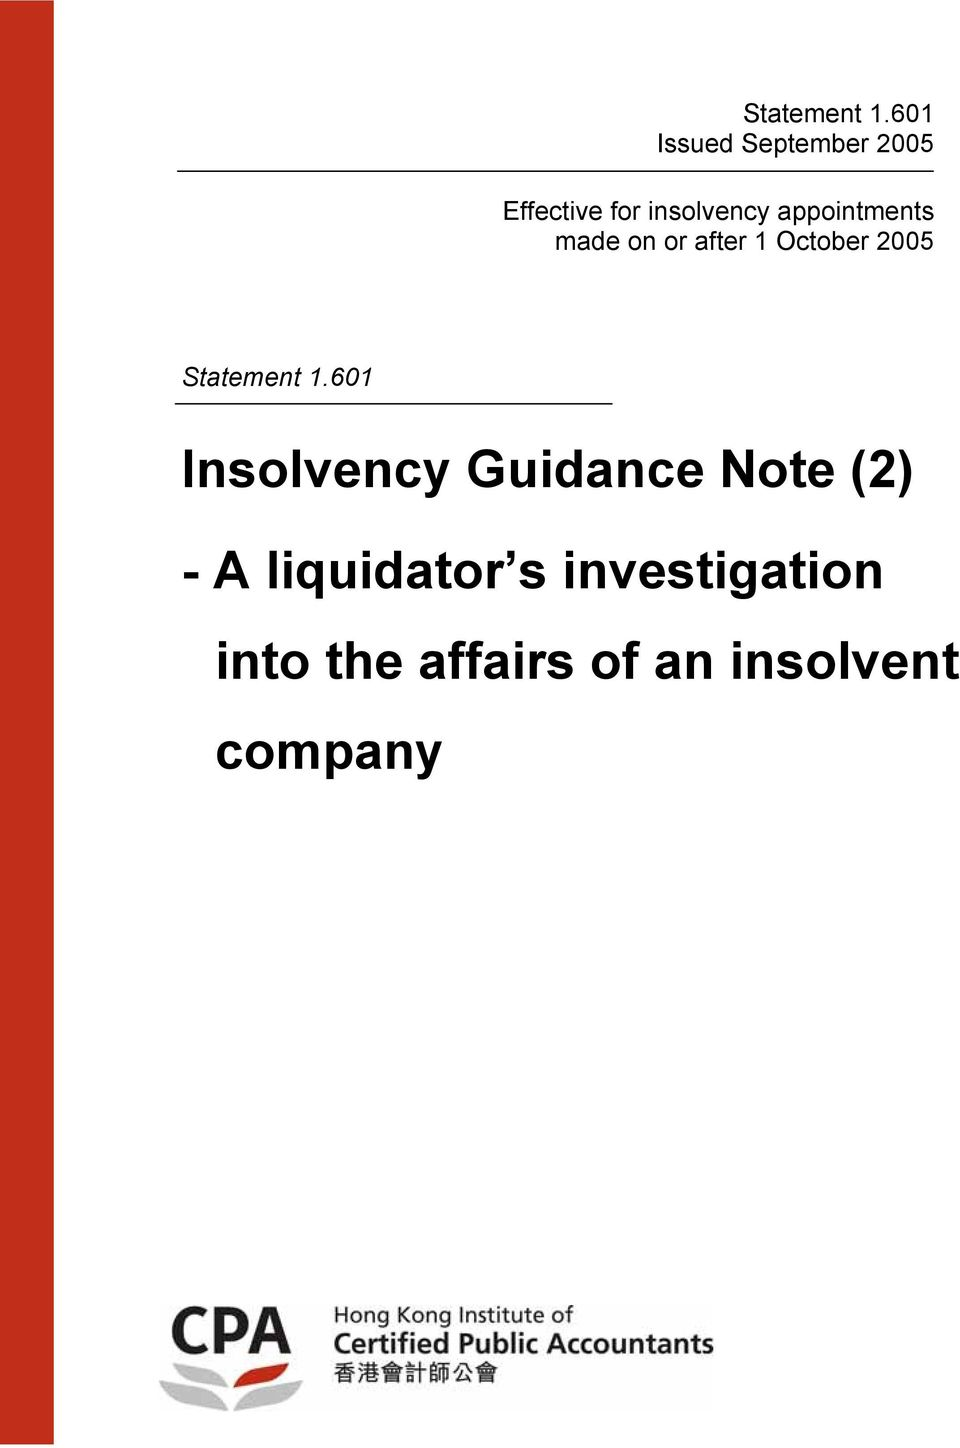 2005 Statement Insolvency Guidance Note (2) - A